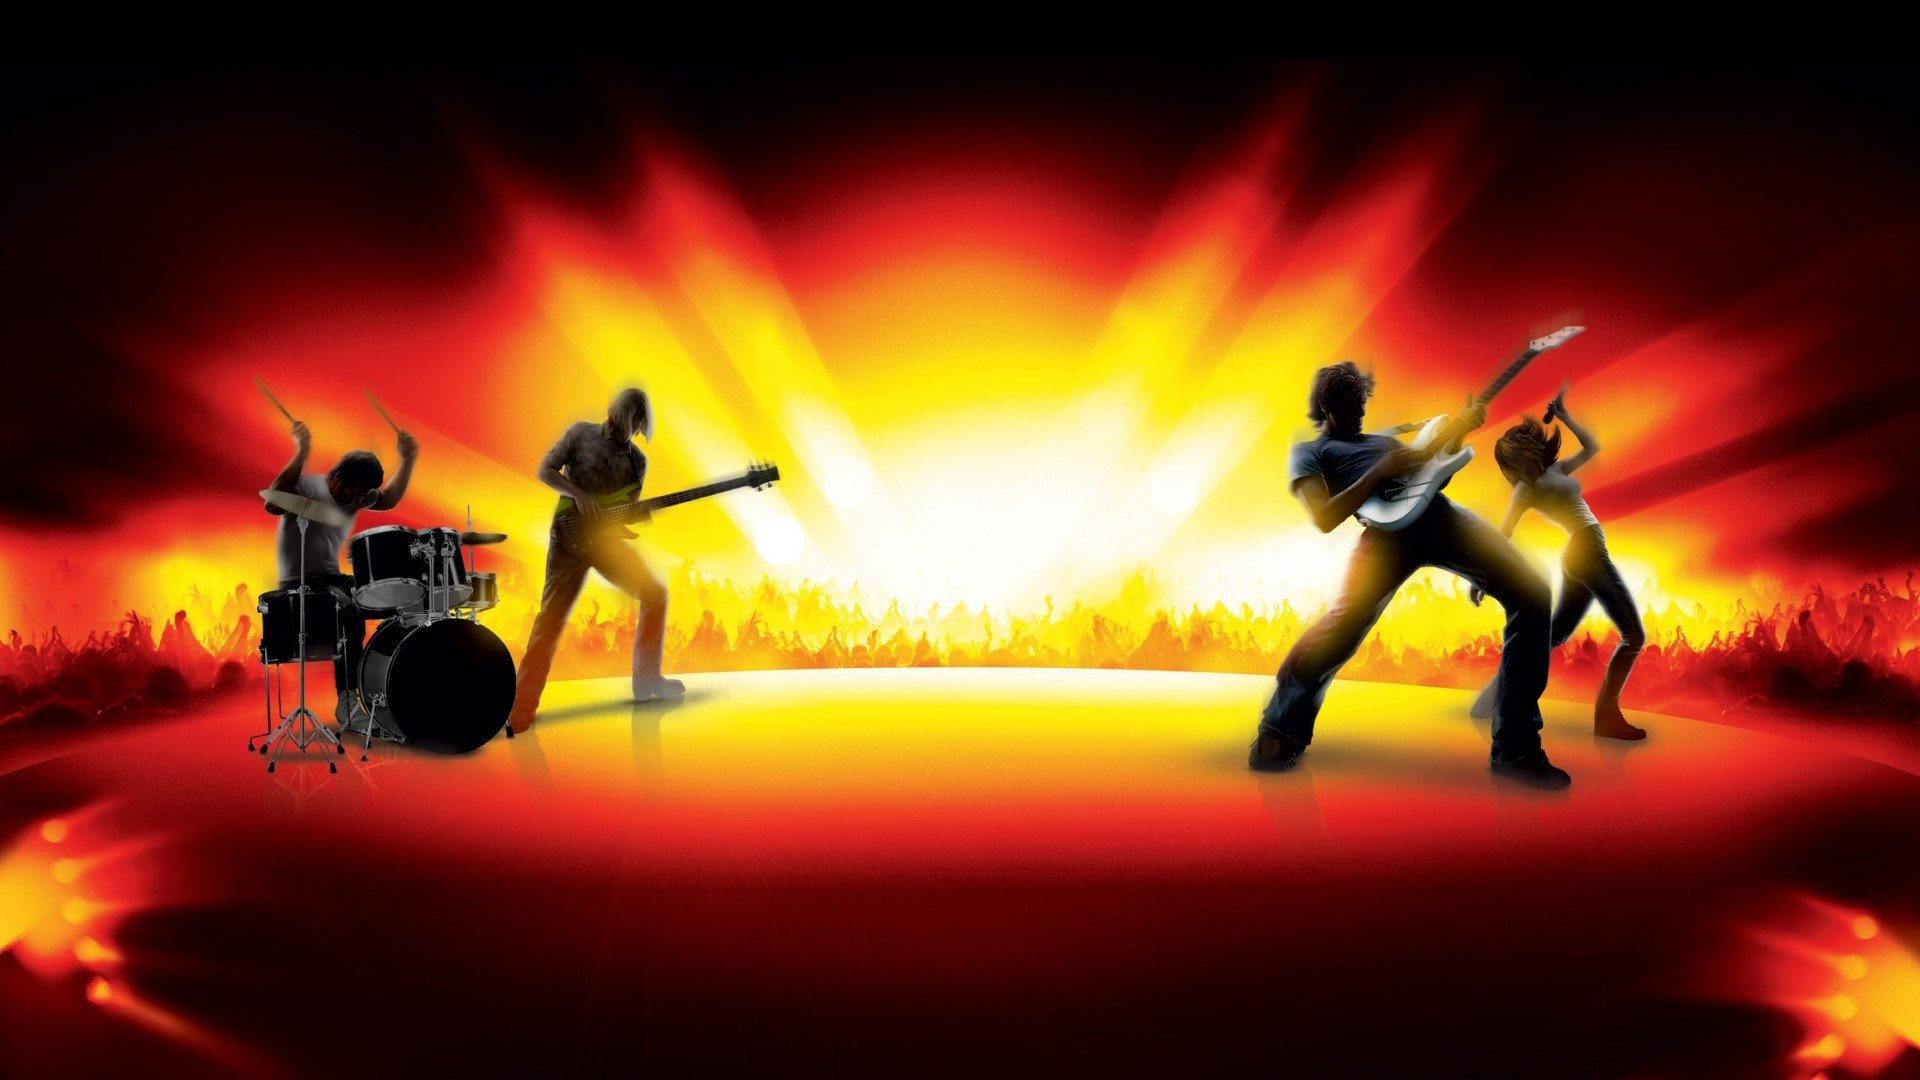 2 Guitar Hero World Tour Hd Wallpapers Background Images Wallpaper Abyss